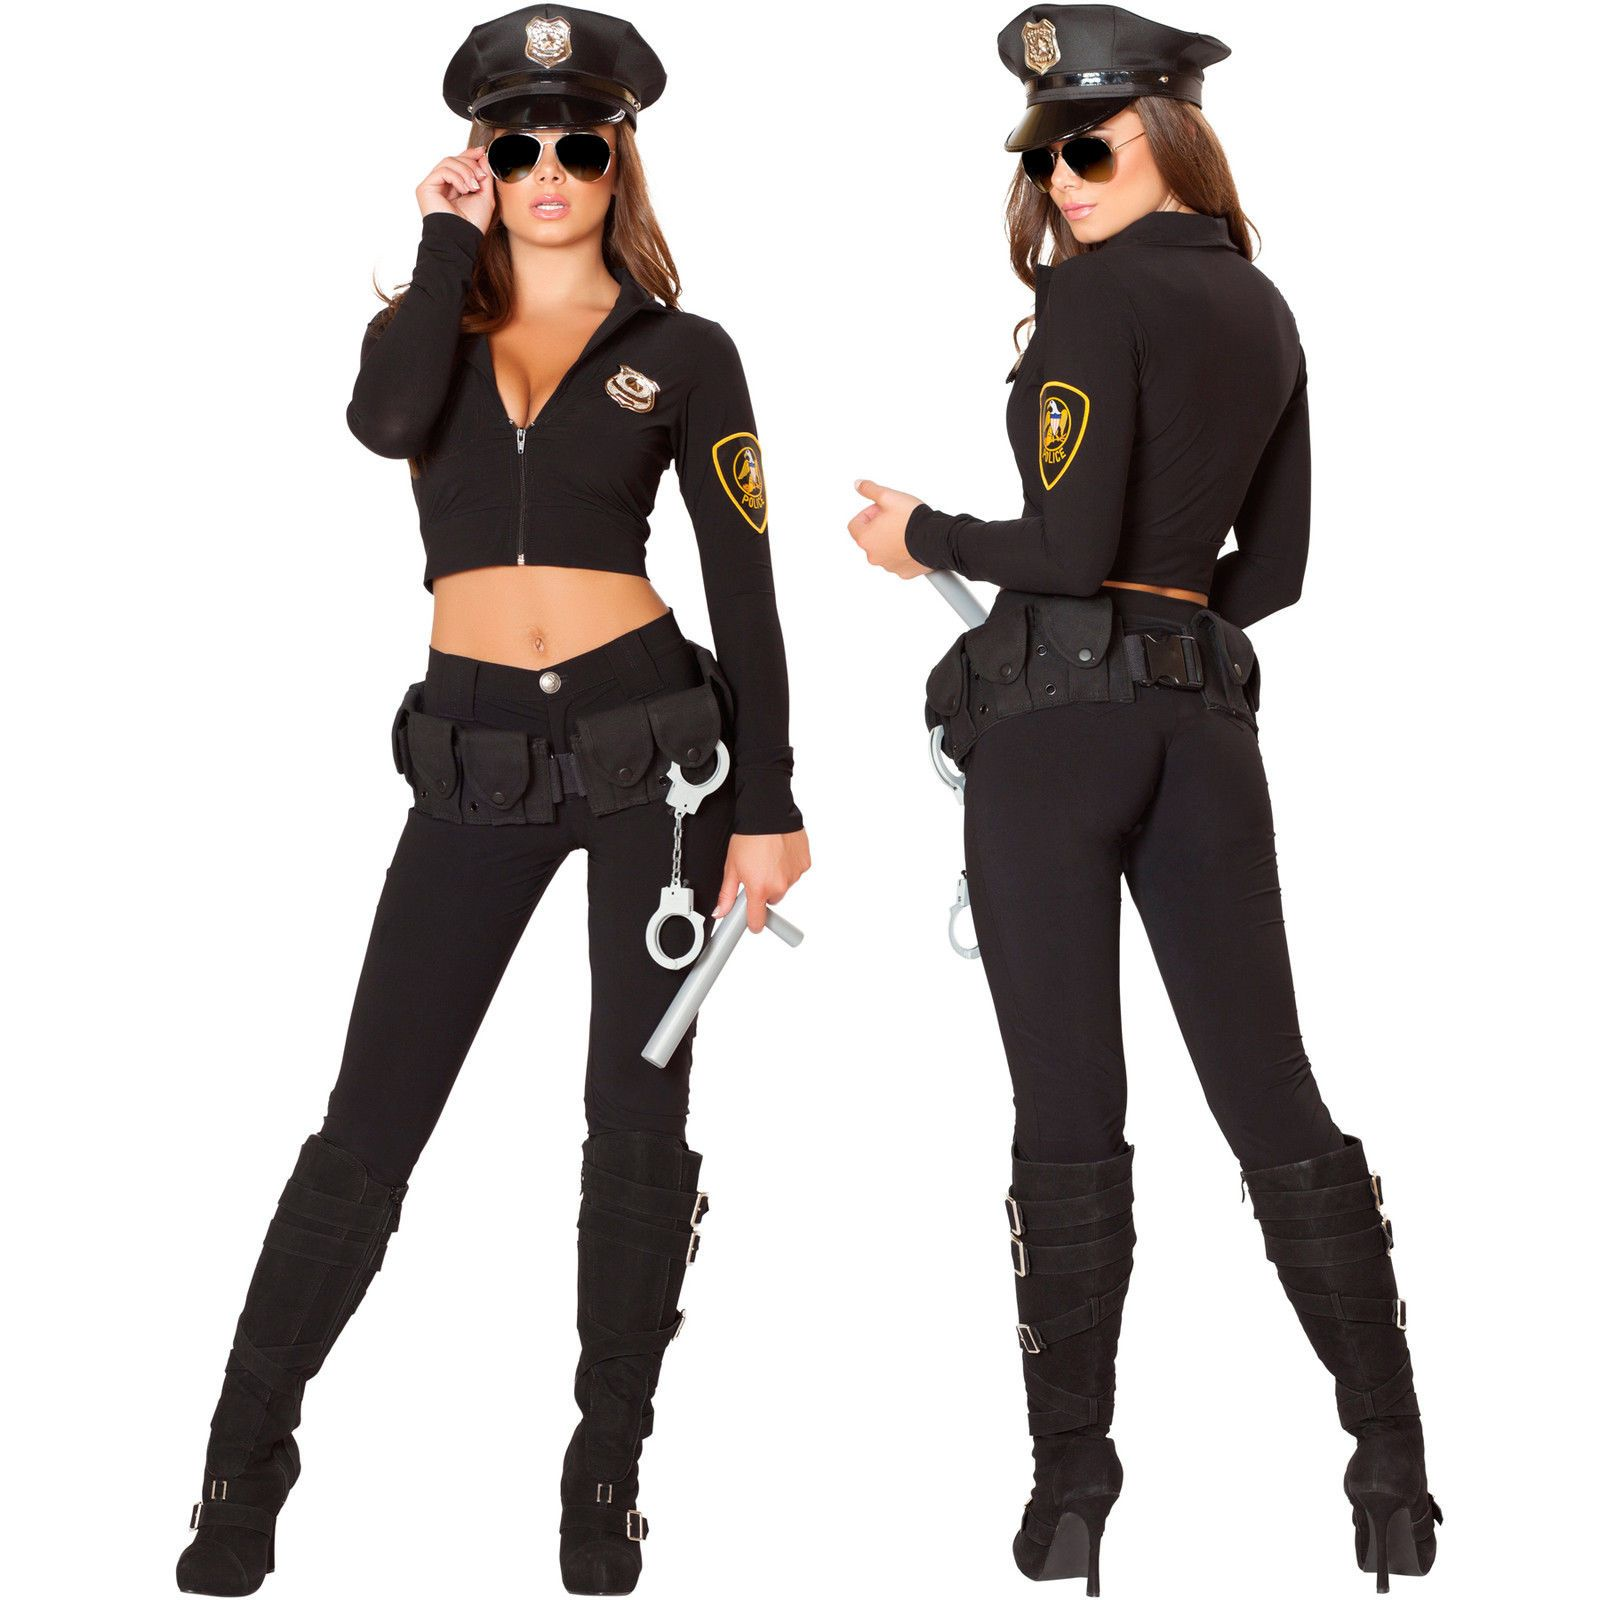 sexy roma womens seductive cop police officer hottie halloween costume outfit halloween ps simple - Swat Costumes For Halloween